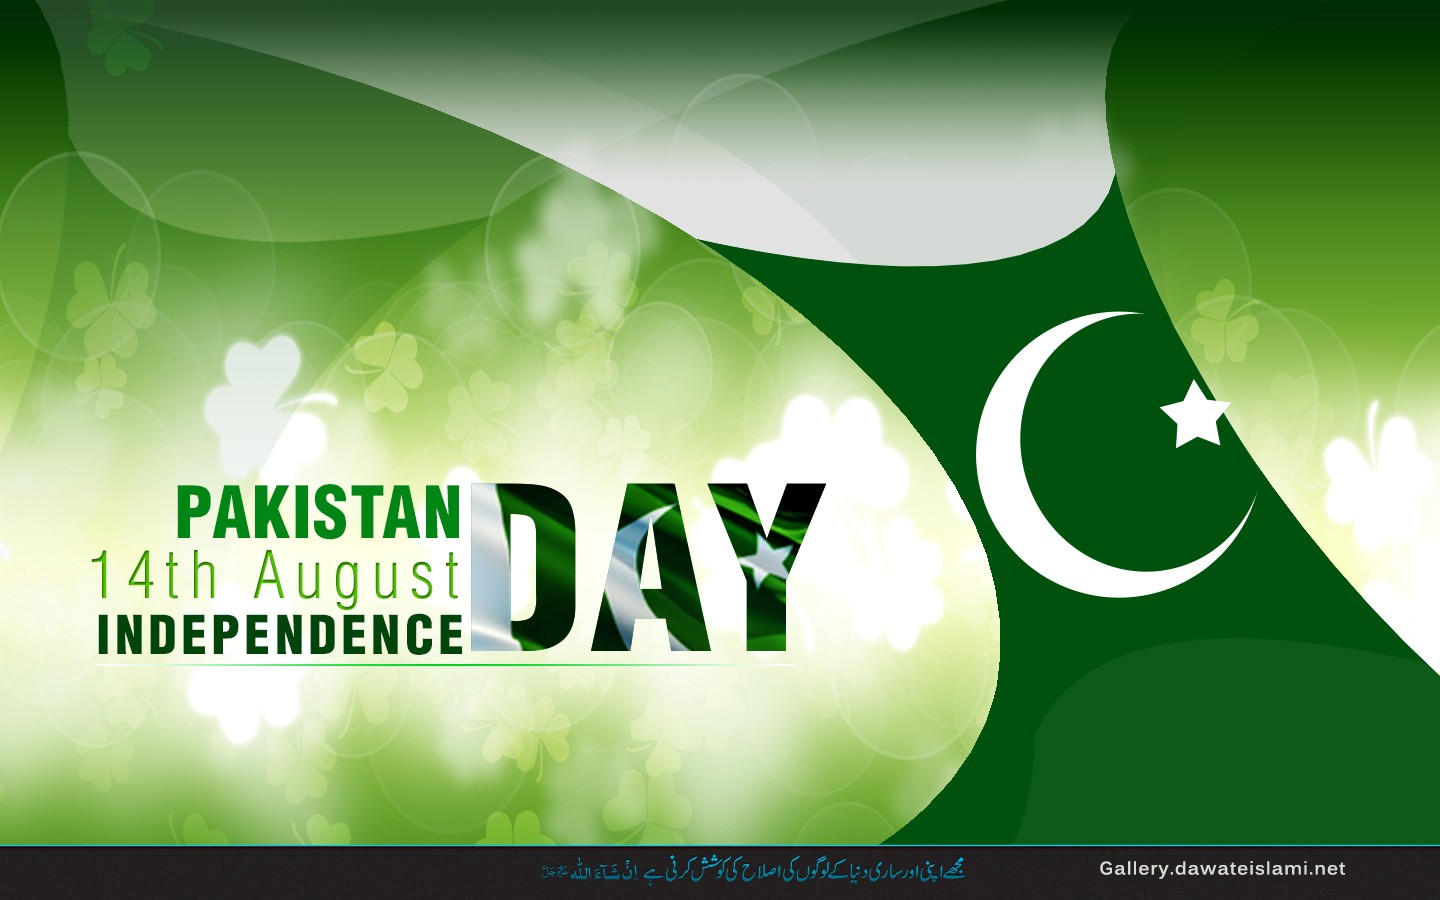 Pakistan Independence Day -14 August